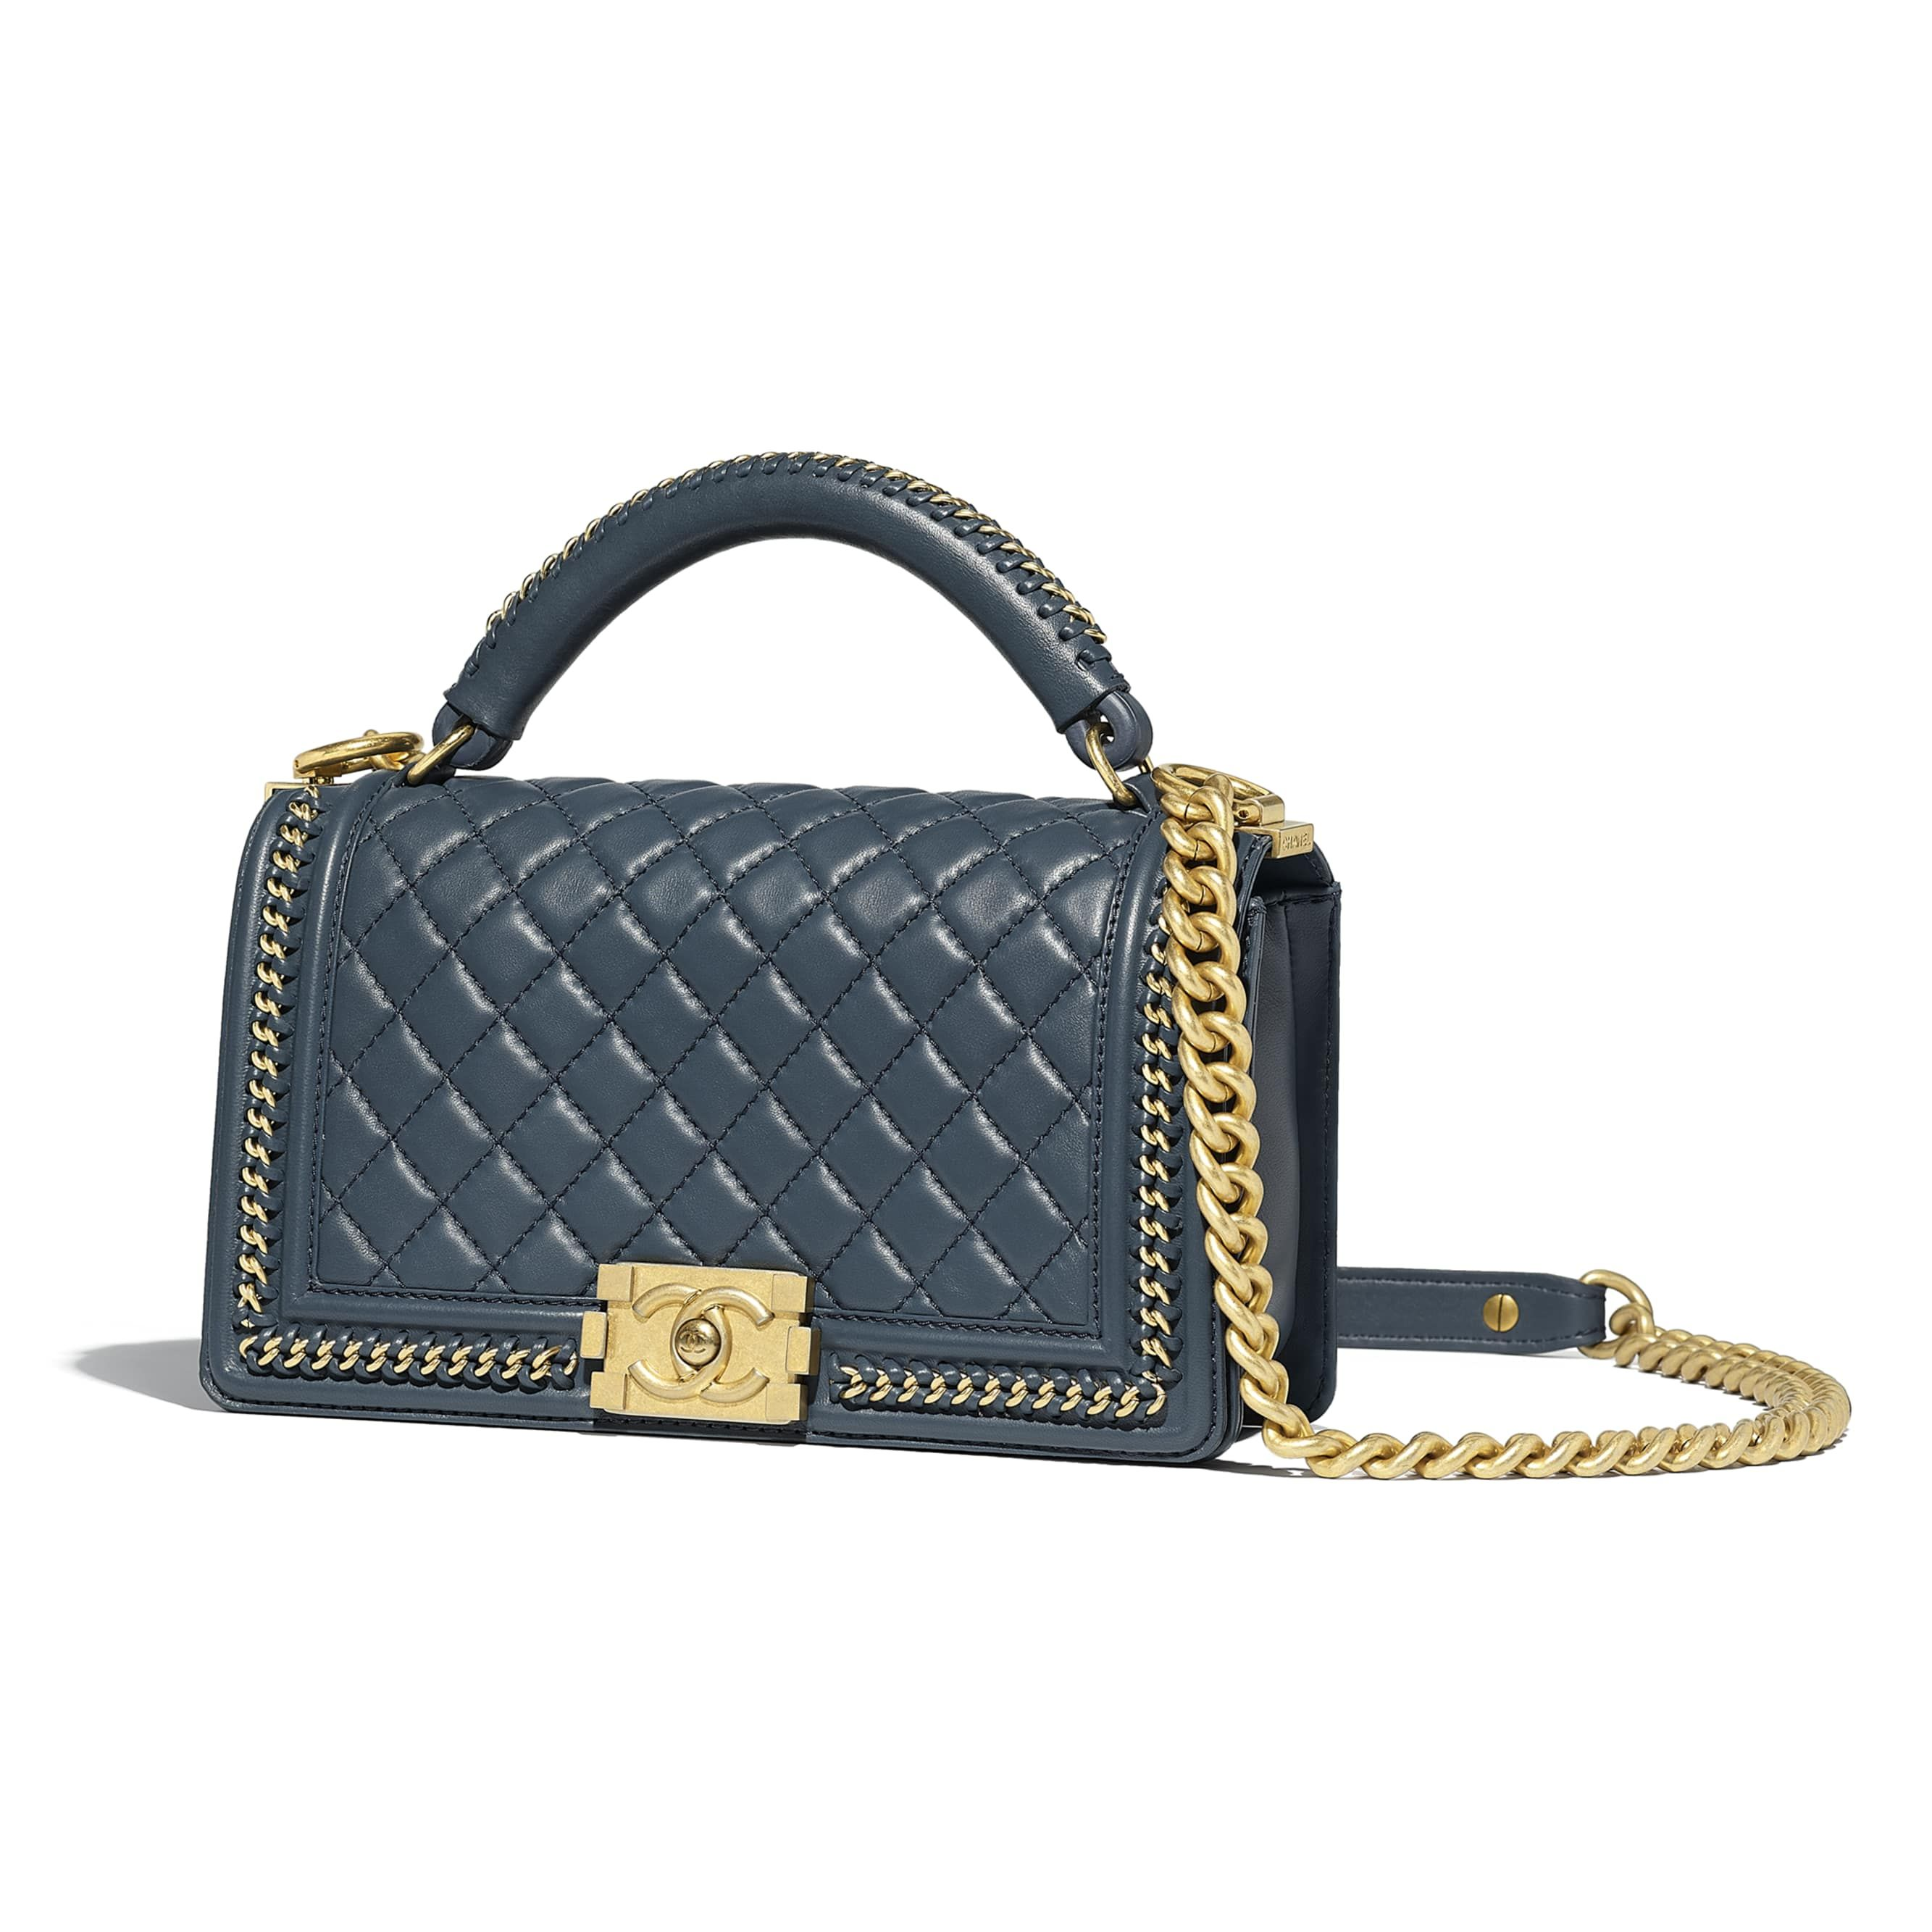 8dceef337a3c Calfskin   Gold-Tone Metal Blue BOY CHANEL Flap Bag with Handle ...